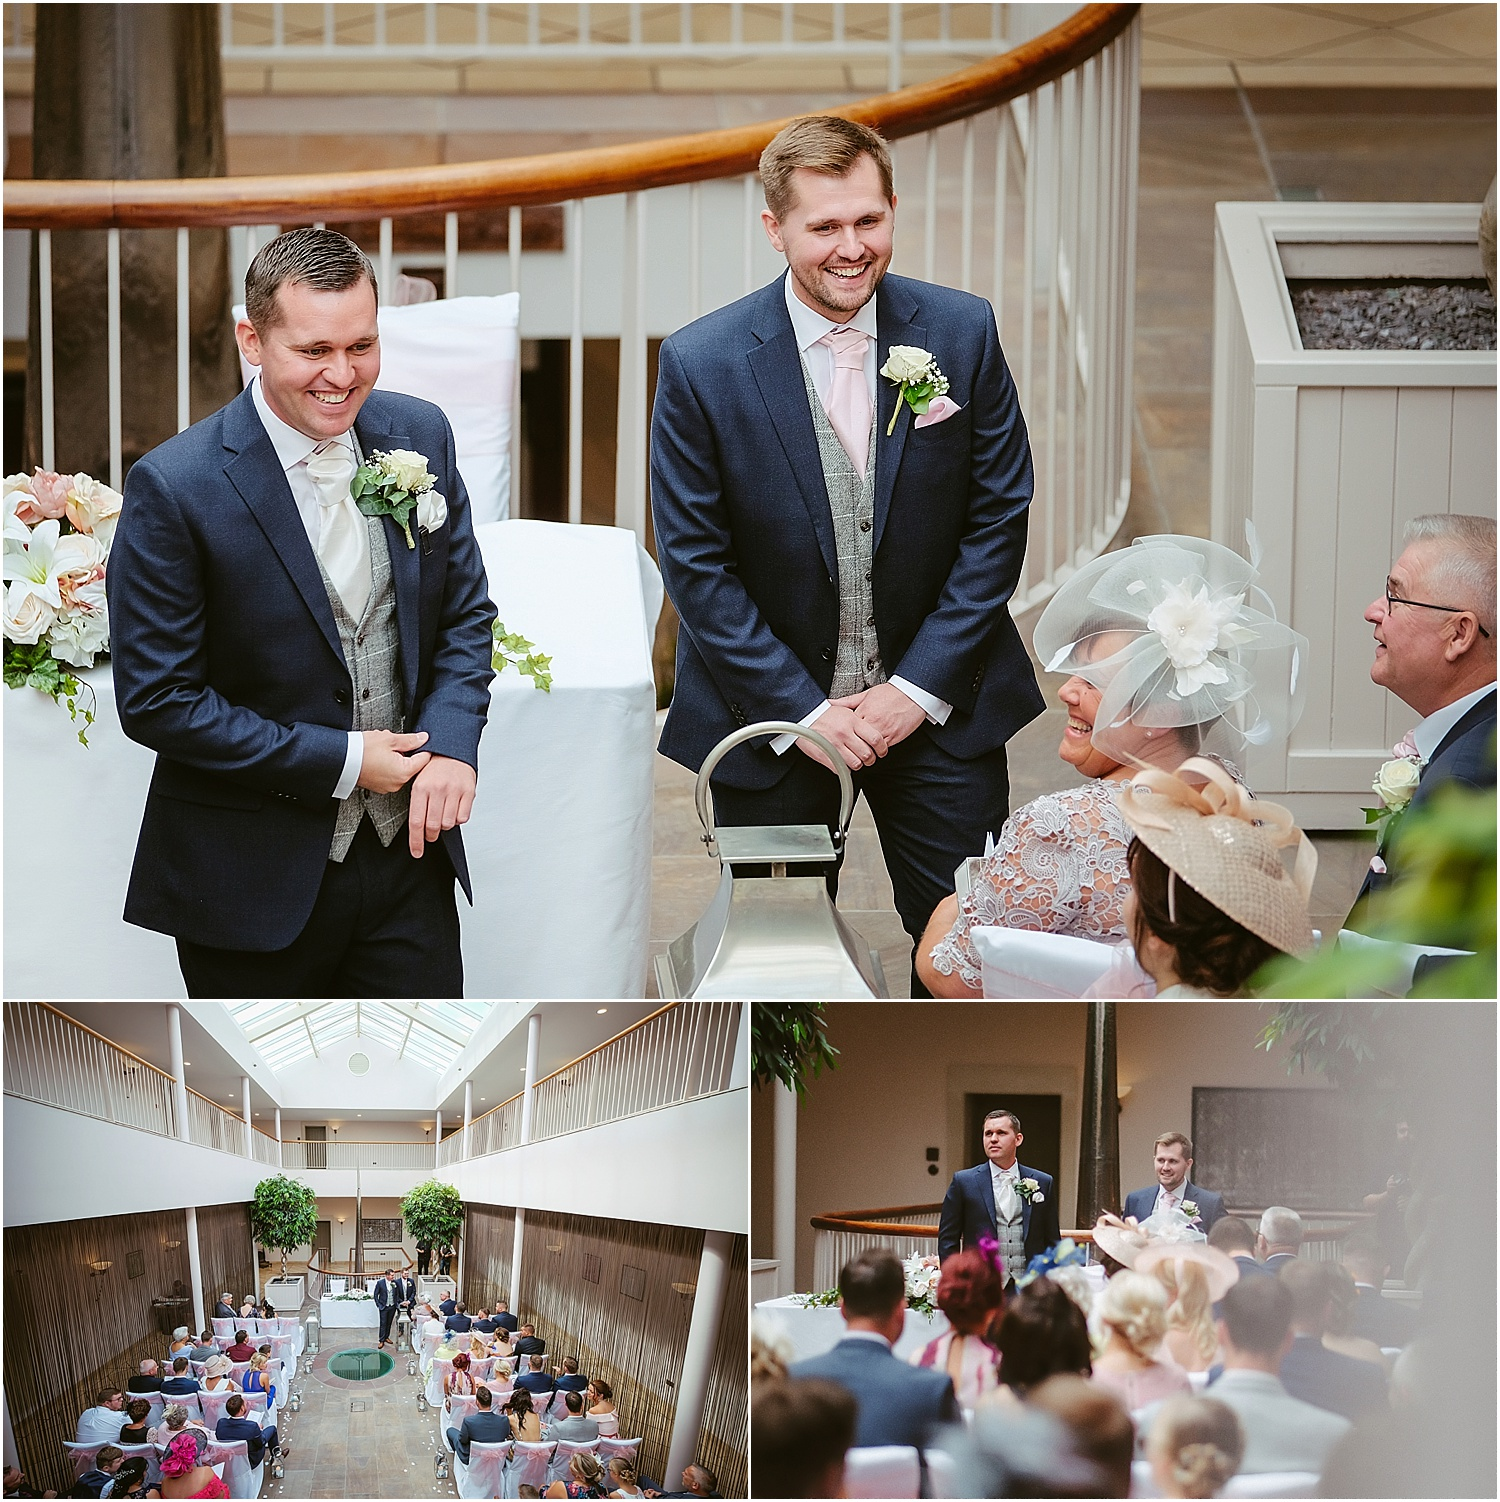 Wedding at Seaham Hall - wedding photography by www.2tonephotography.co.uk 026.jpg